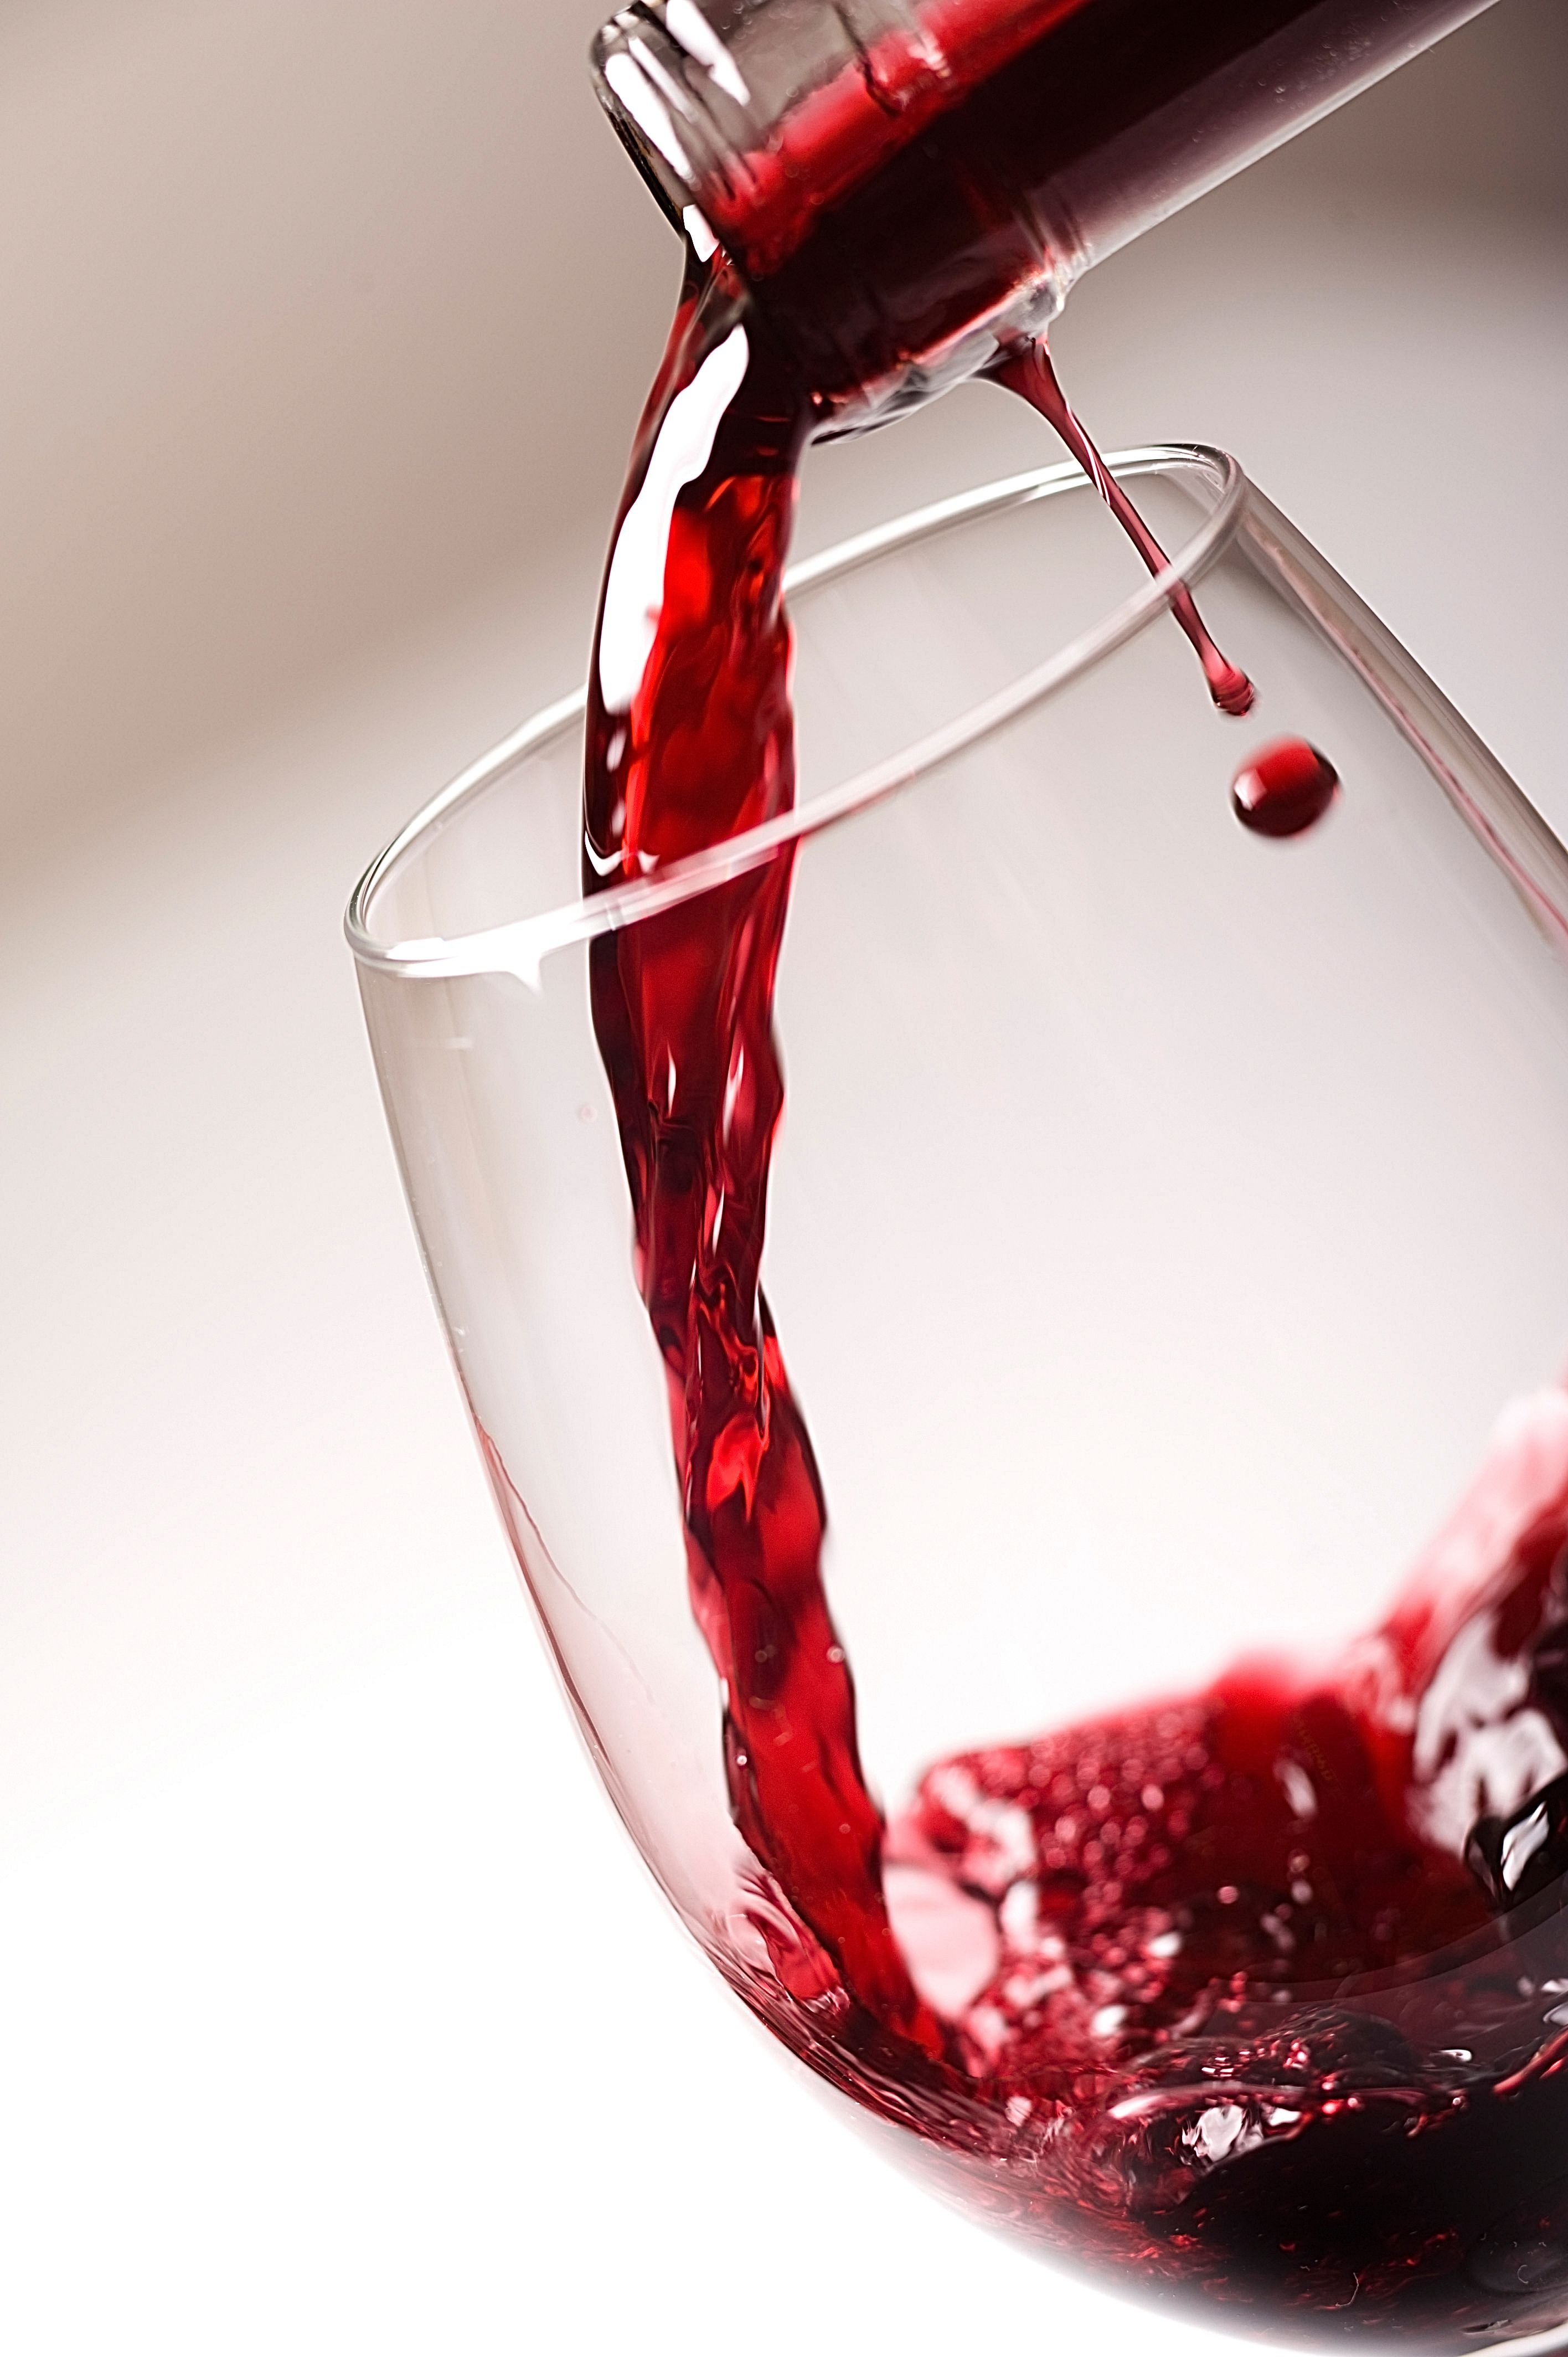 Pin By Miriam G Maestre On Wine Diva Wine Photography Wine Painted Wine Glass